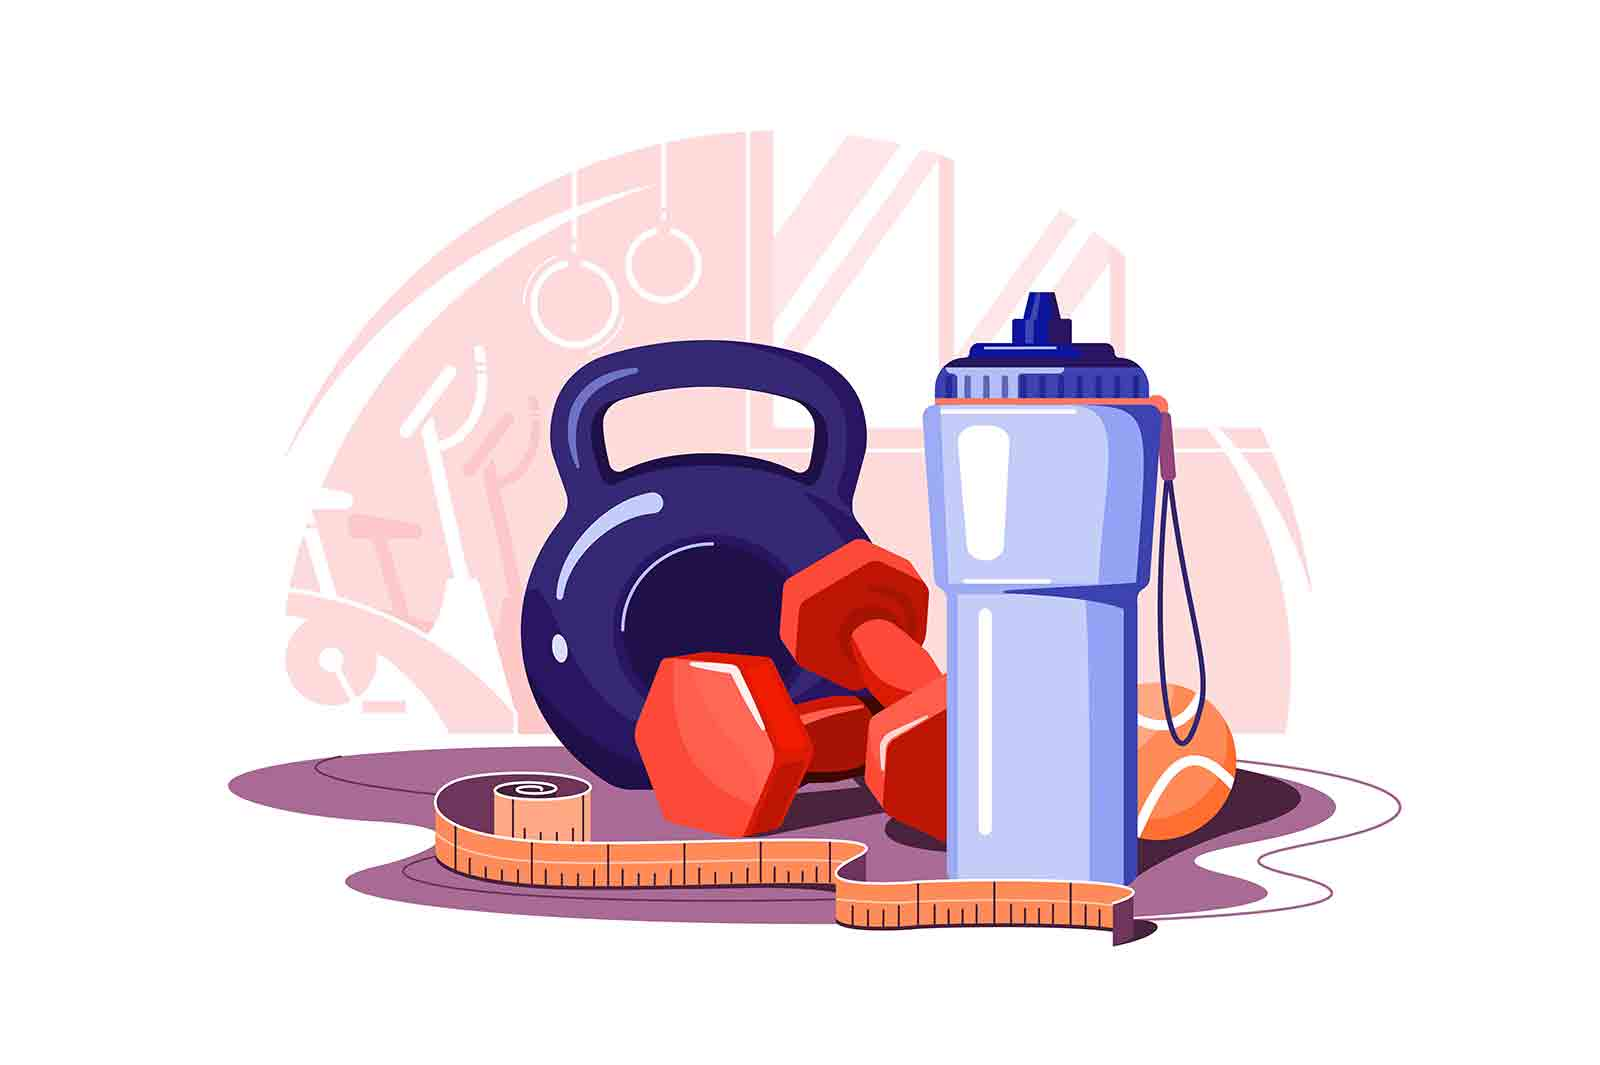 Equipment for fitness and workout vector illustration. Dumbbell, bottle, ball set flat style. Sport, weight loss, activity, gym concept